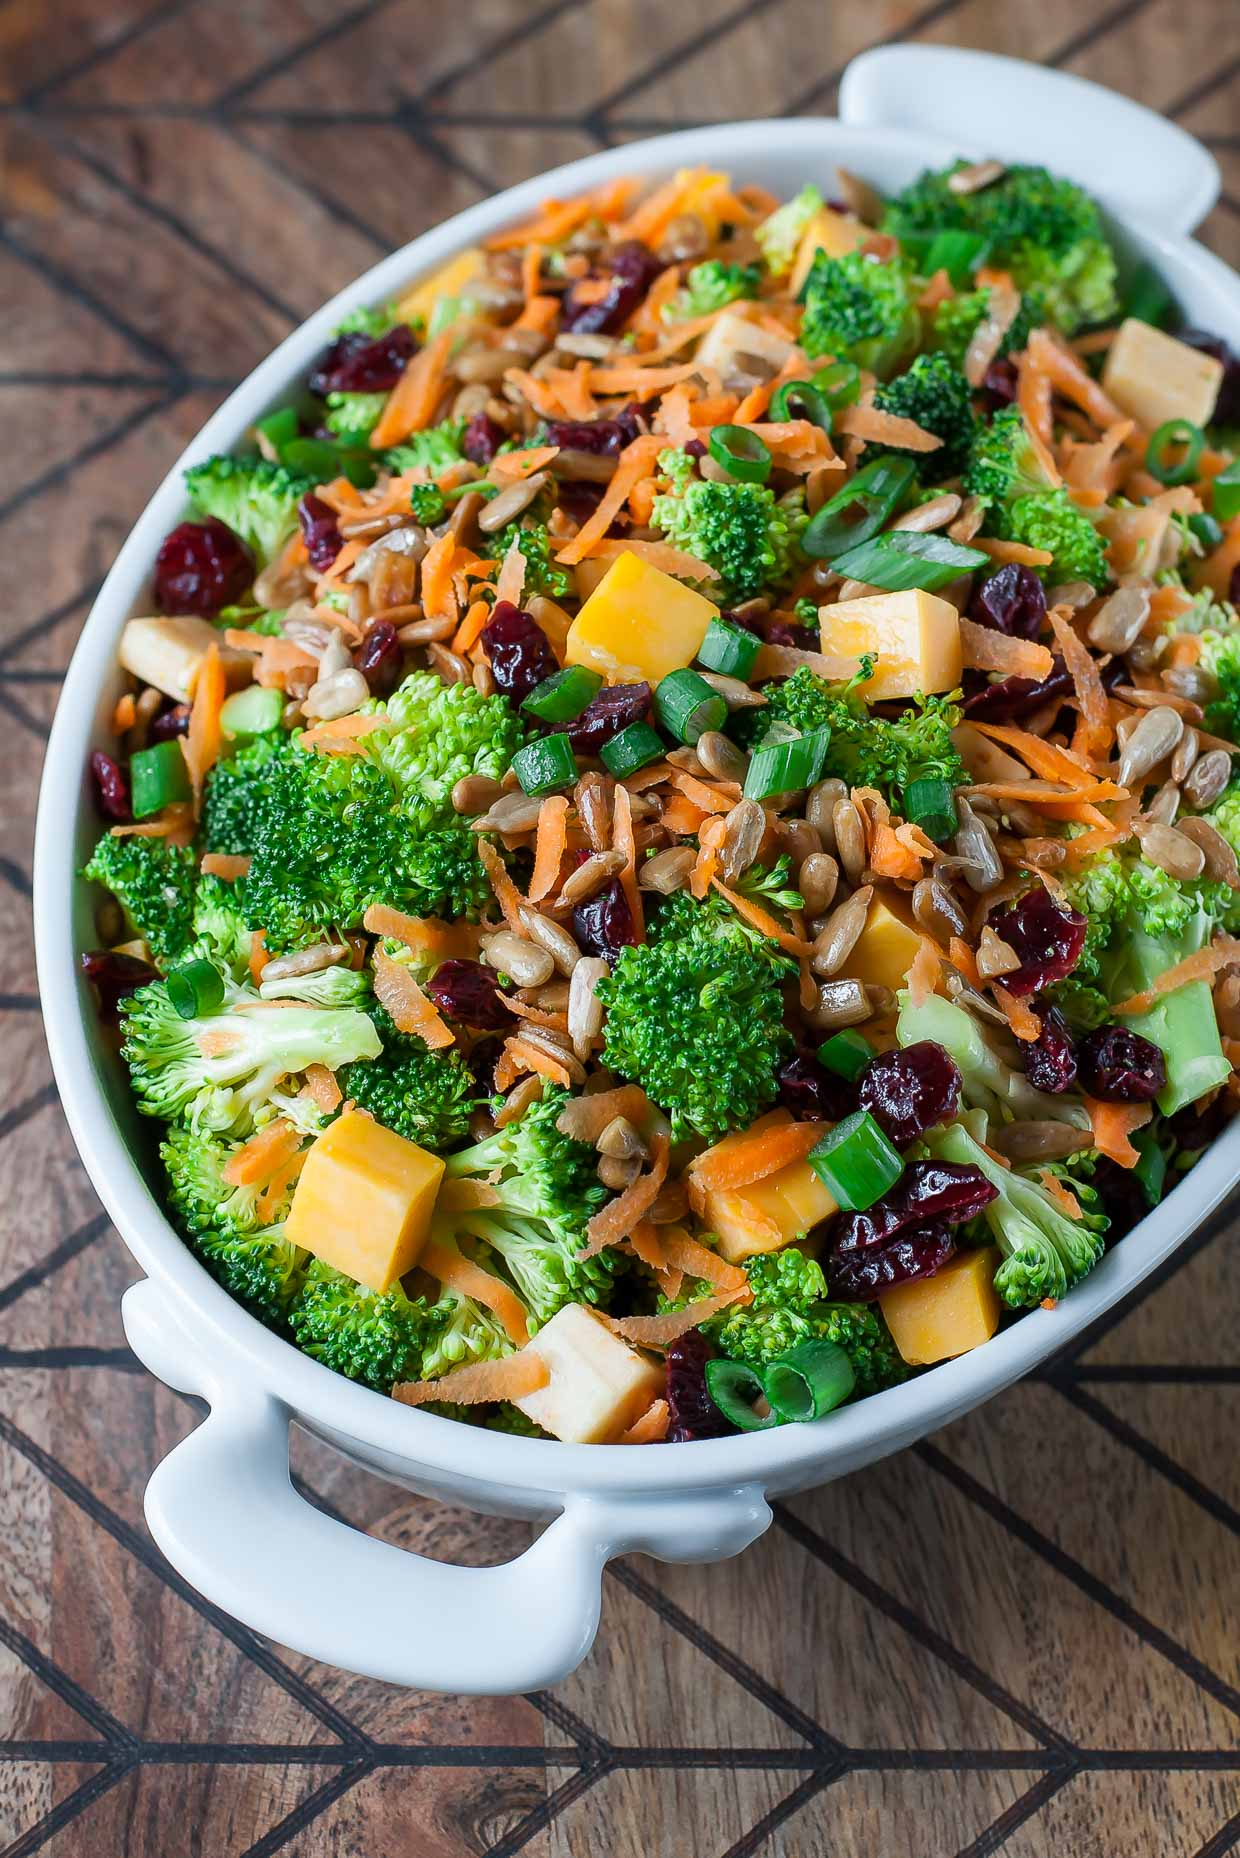 Classic Broccoli Salad with cranberries, carrots, and tasty lightened-up homemade dressing.